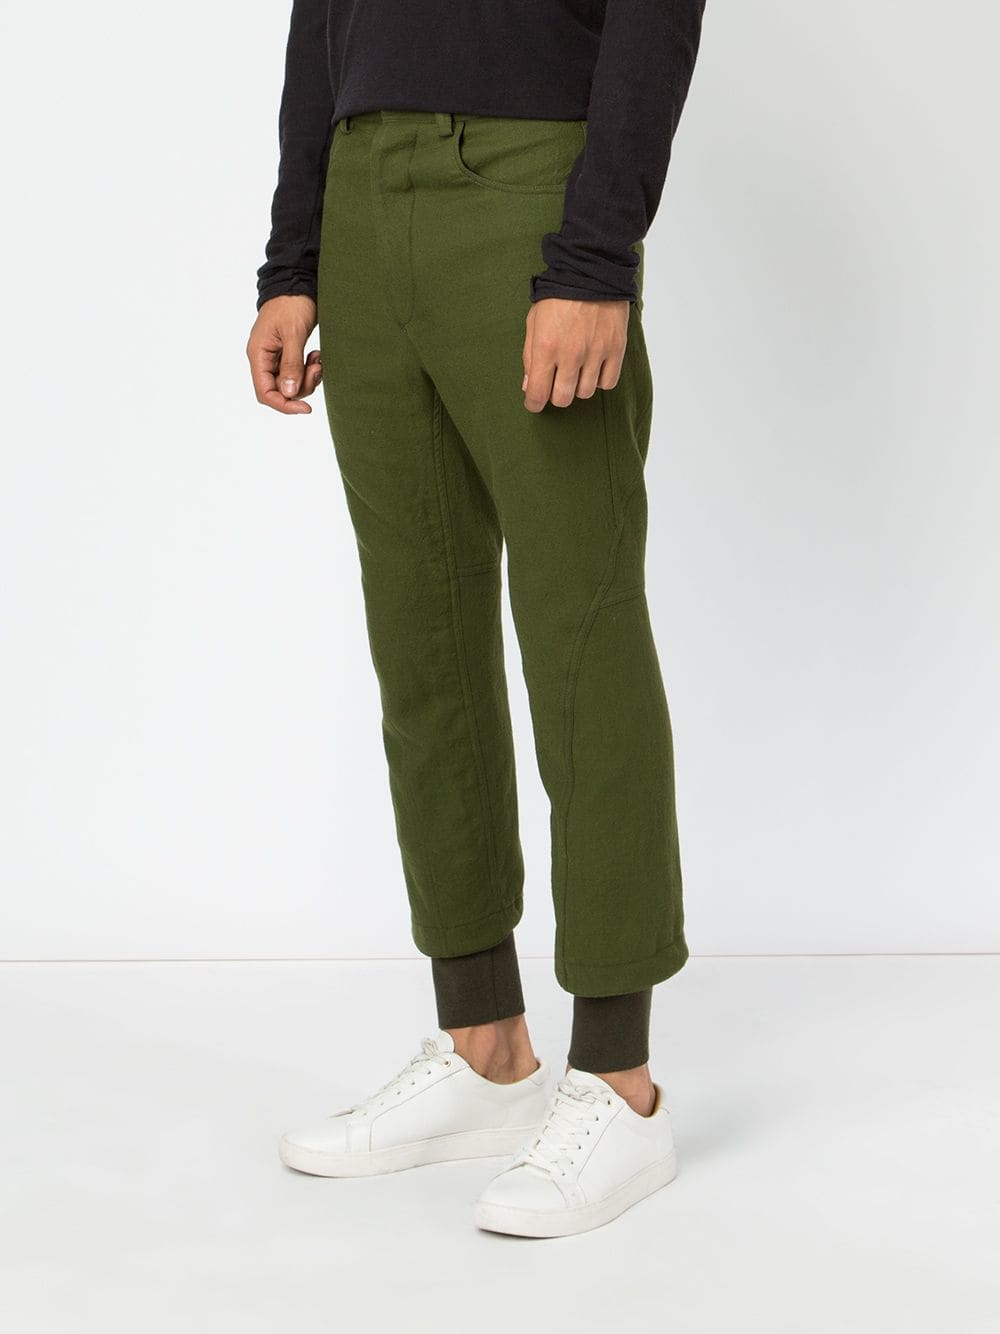 HAIDER ACKERMANN MEN BINDING DETAIL TROUSER 184-3410-187-048